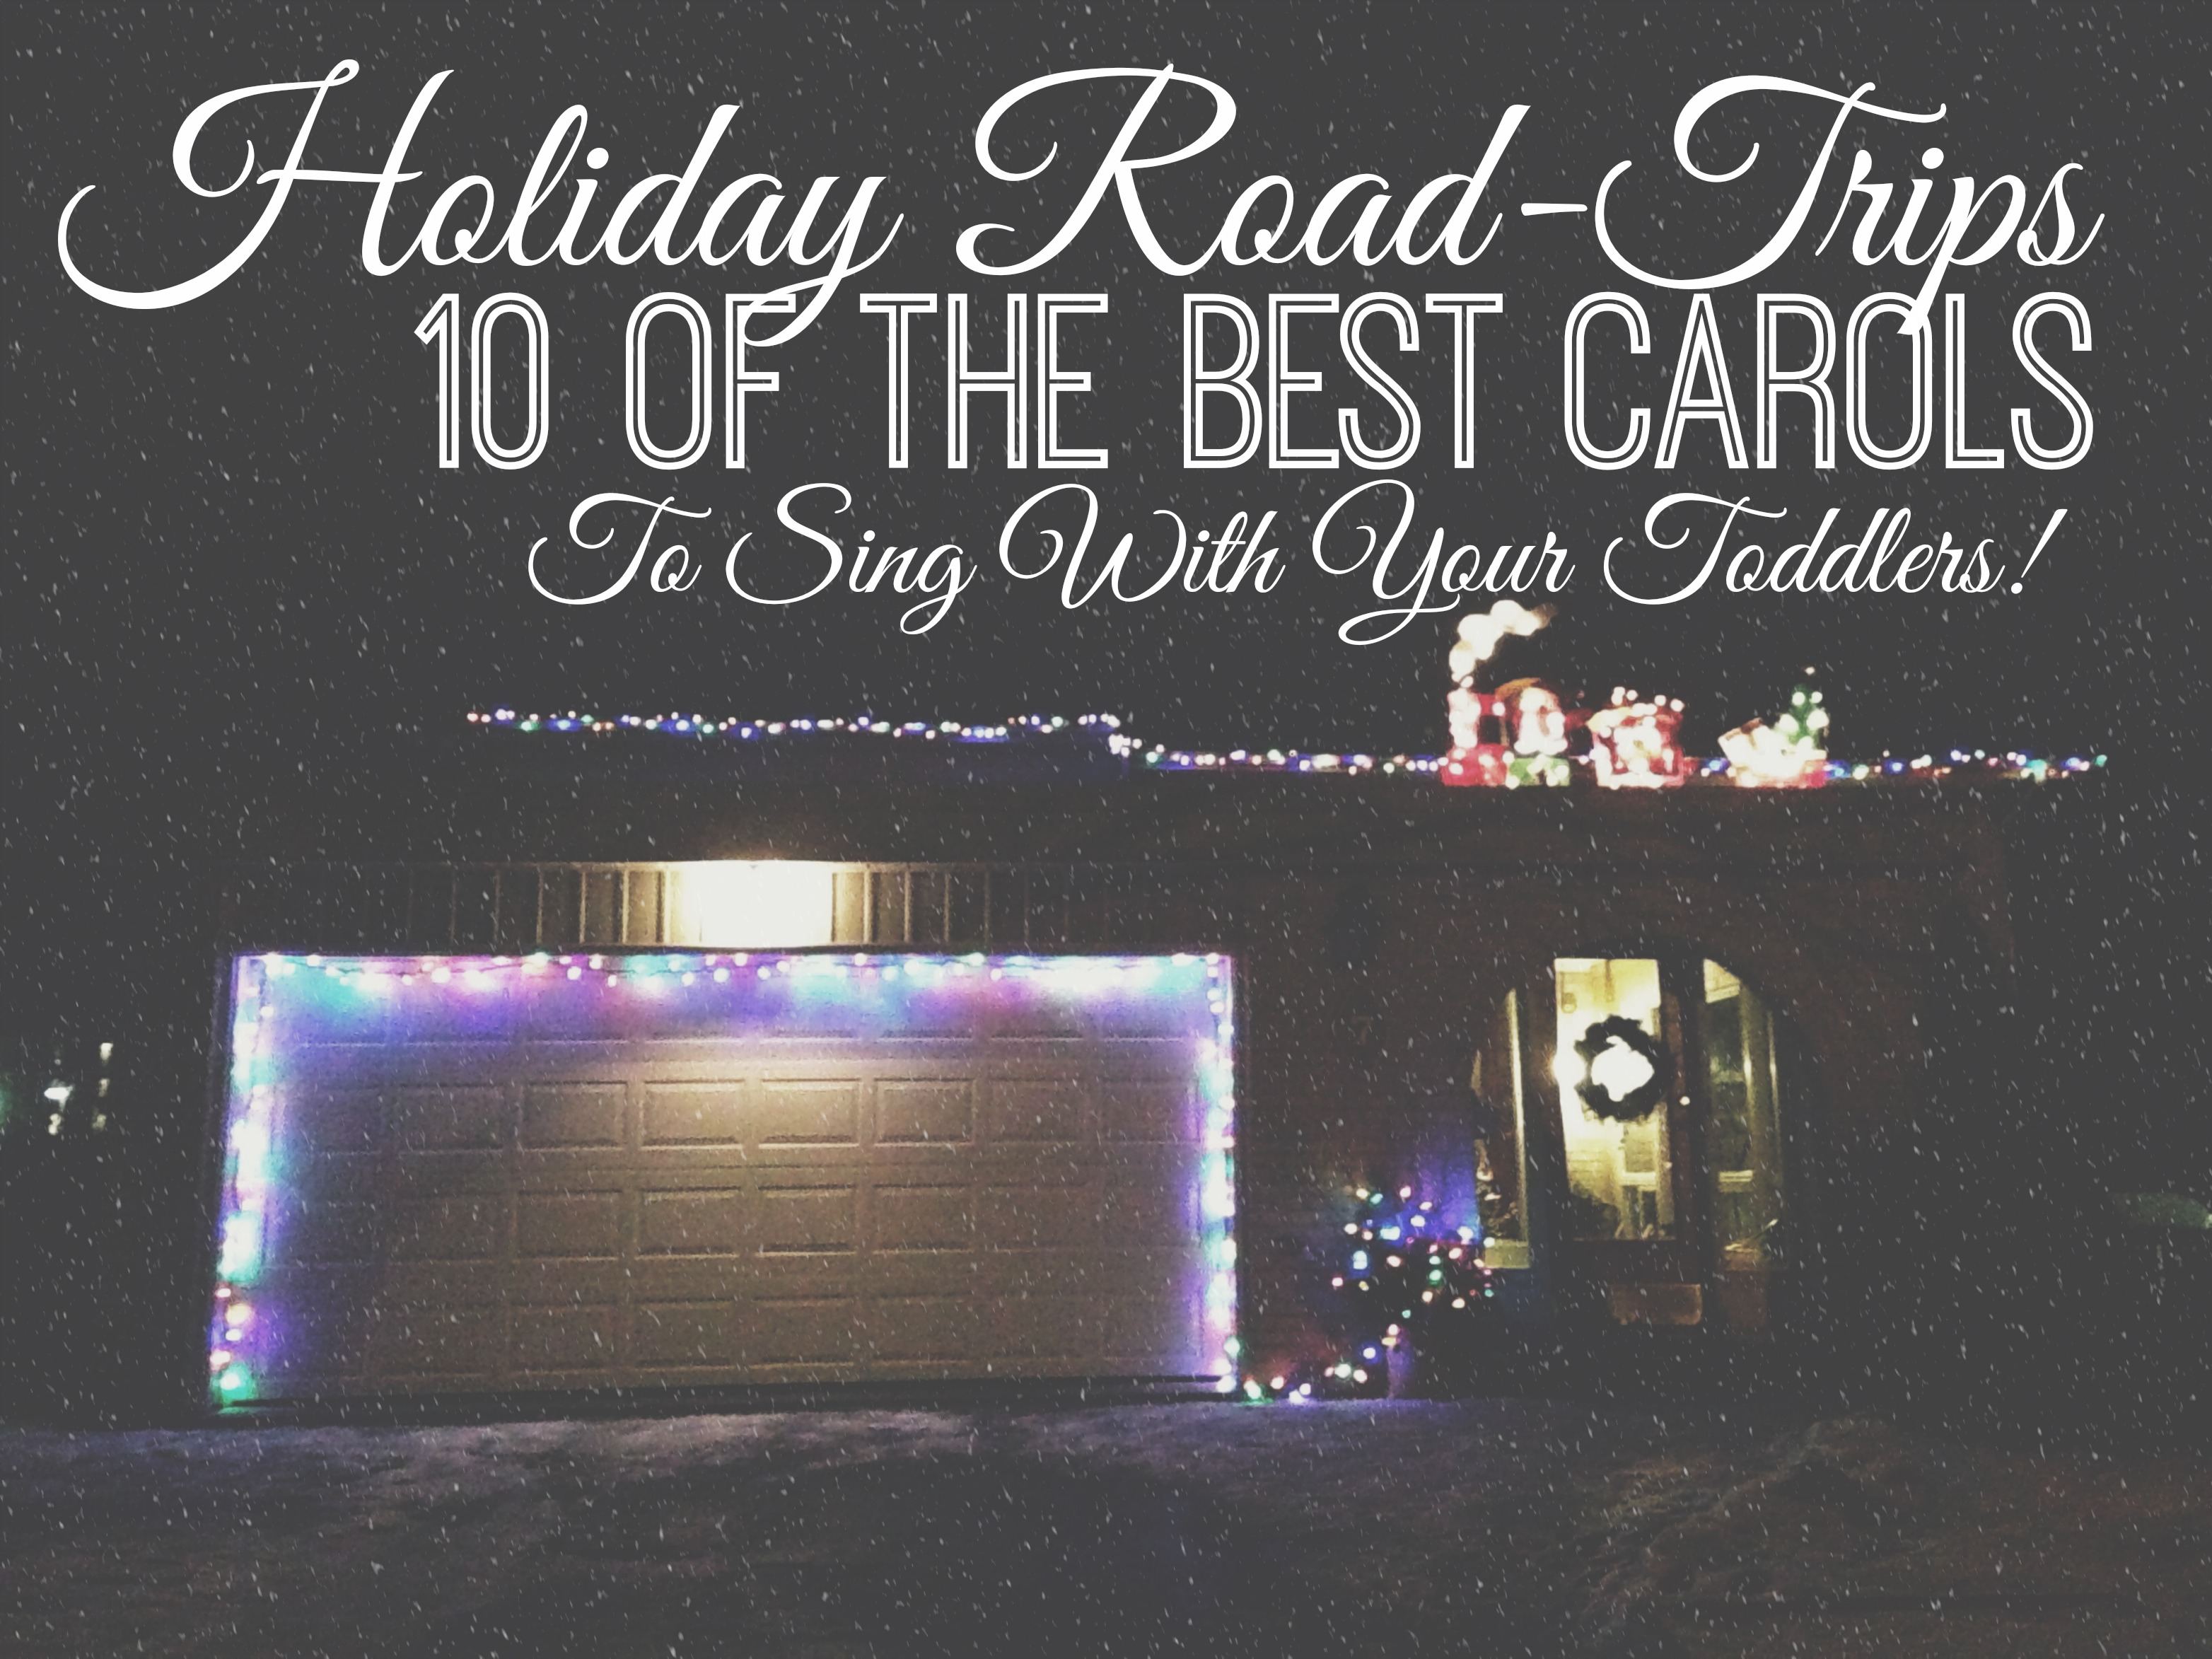 Home For The Holidays: Carols To Sing With Toddlers While Road-Tripping